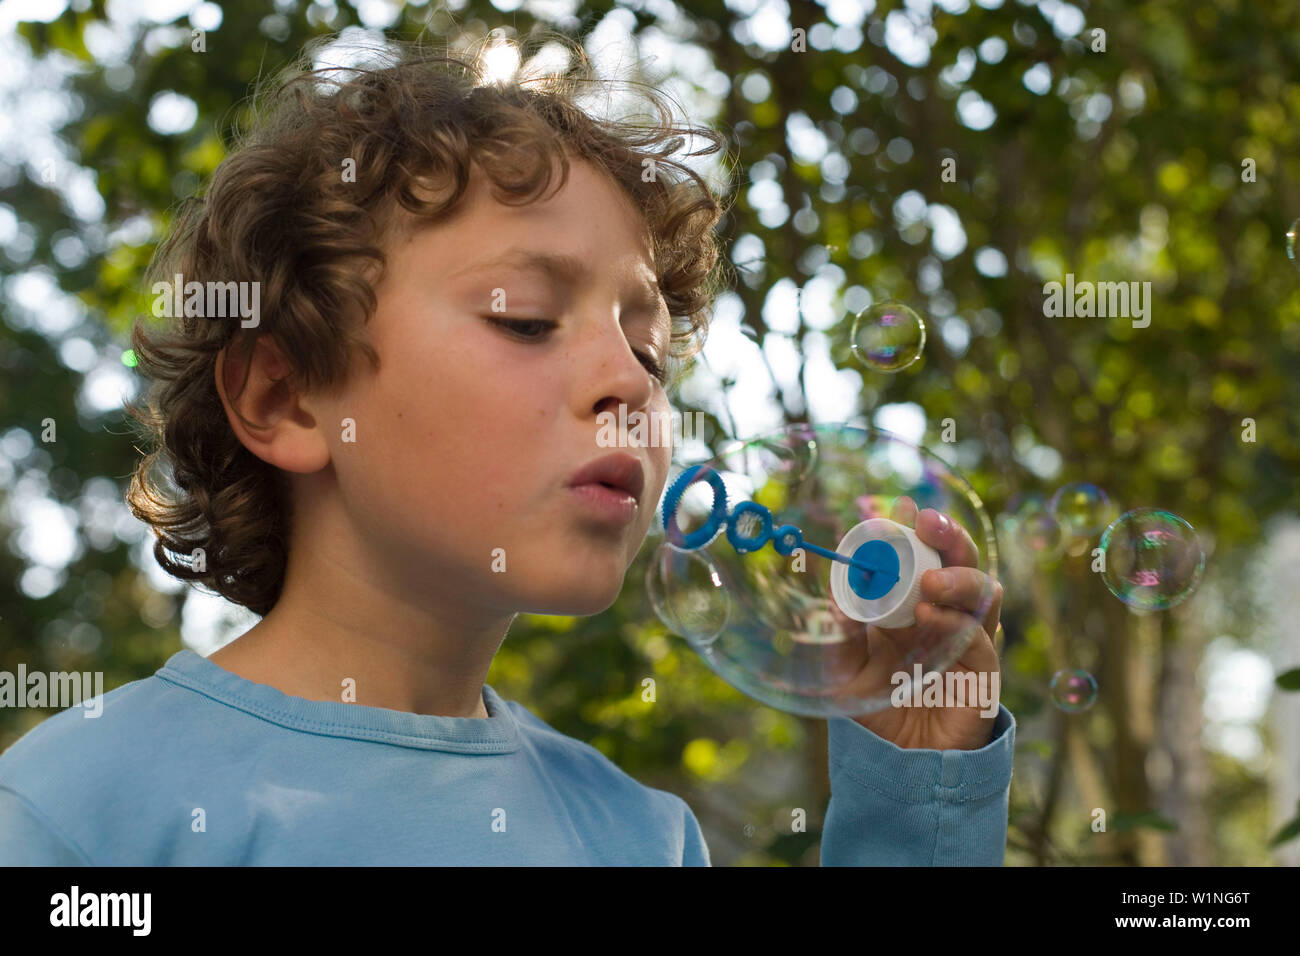 Boy blowing soap bubbles, children's birthday party - Stock Image